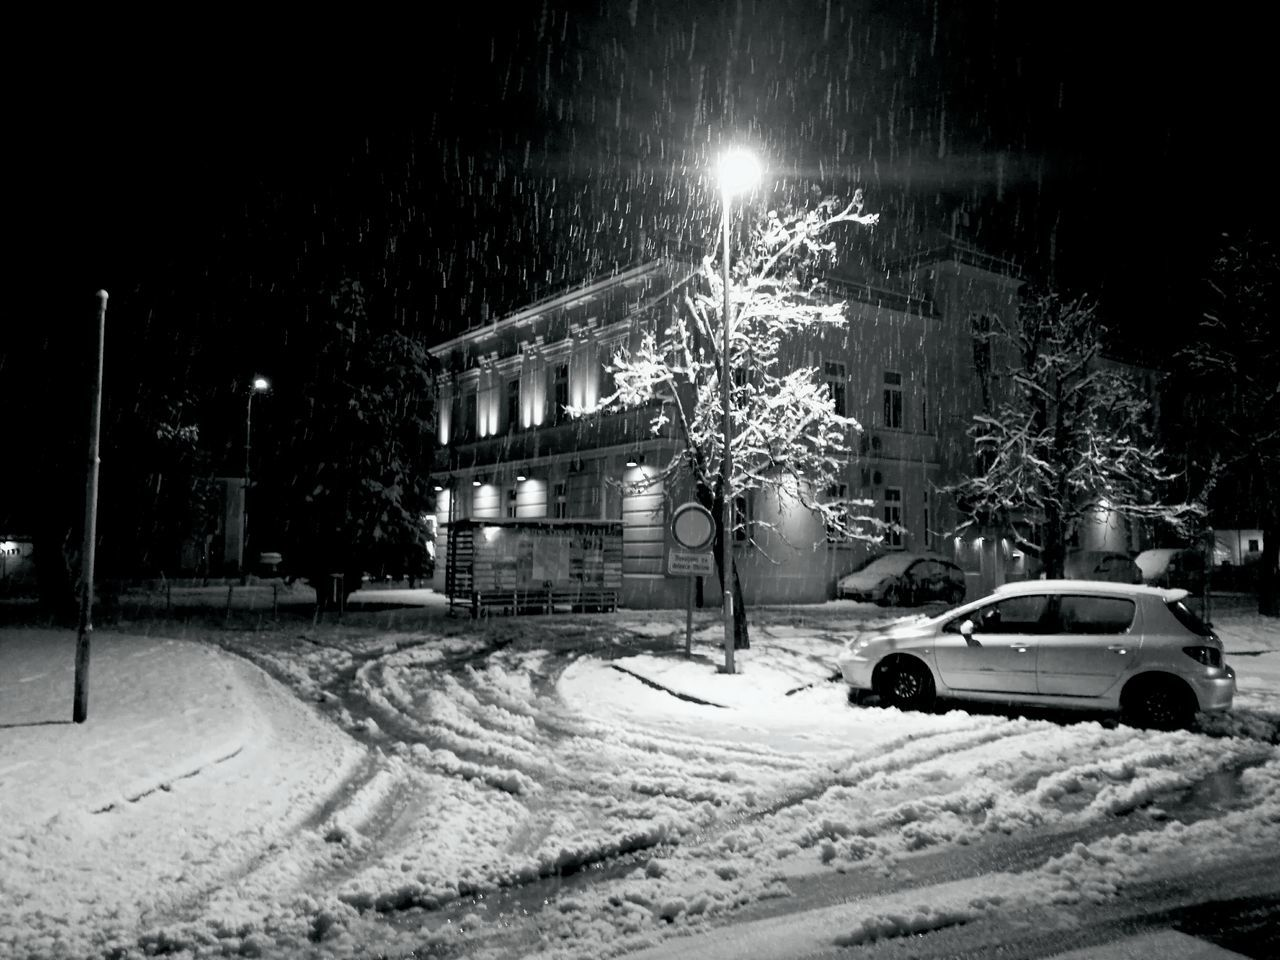 Night light / first snow this year